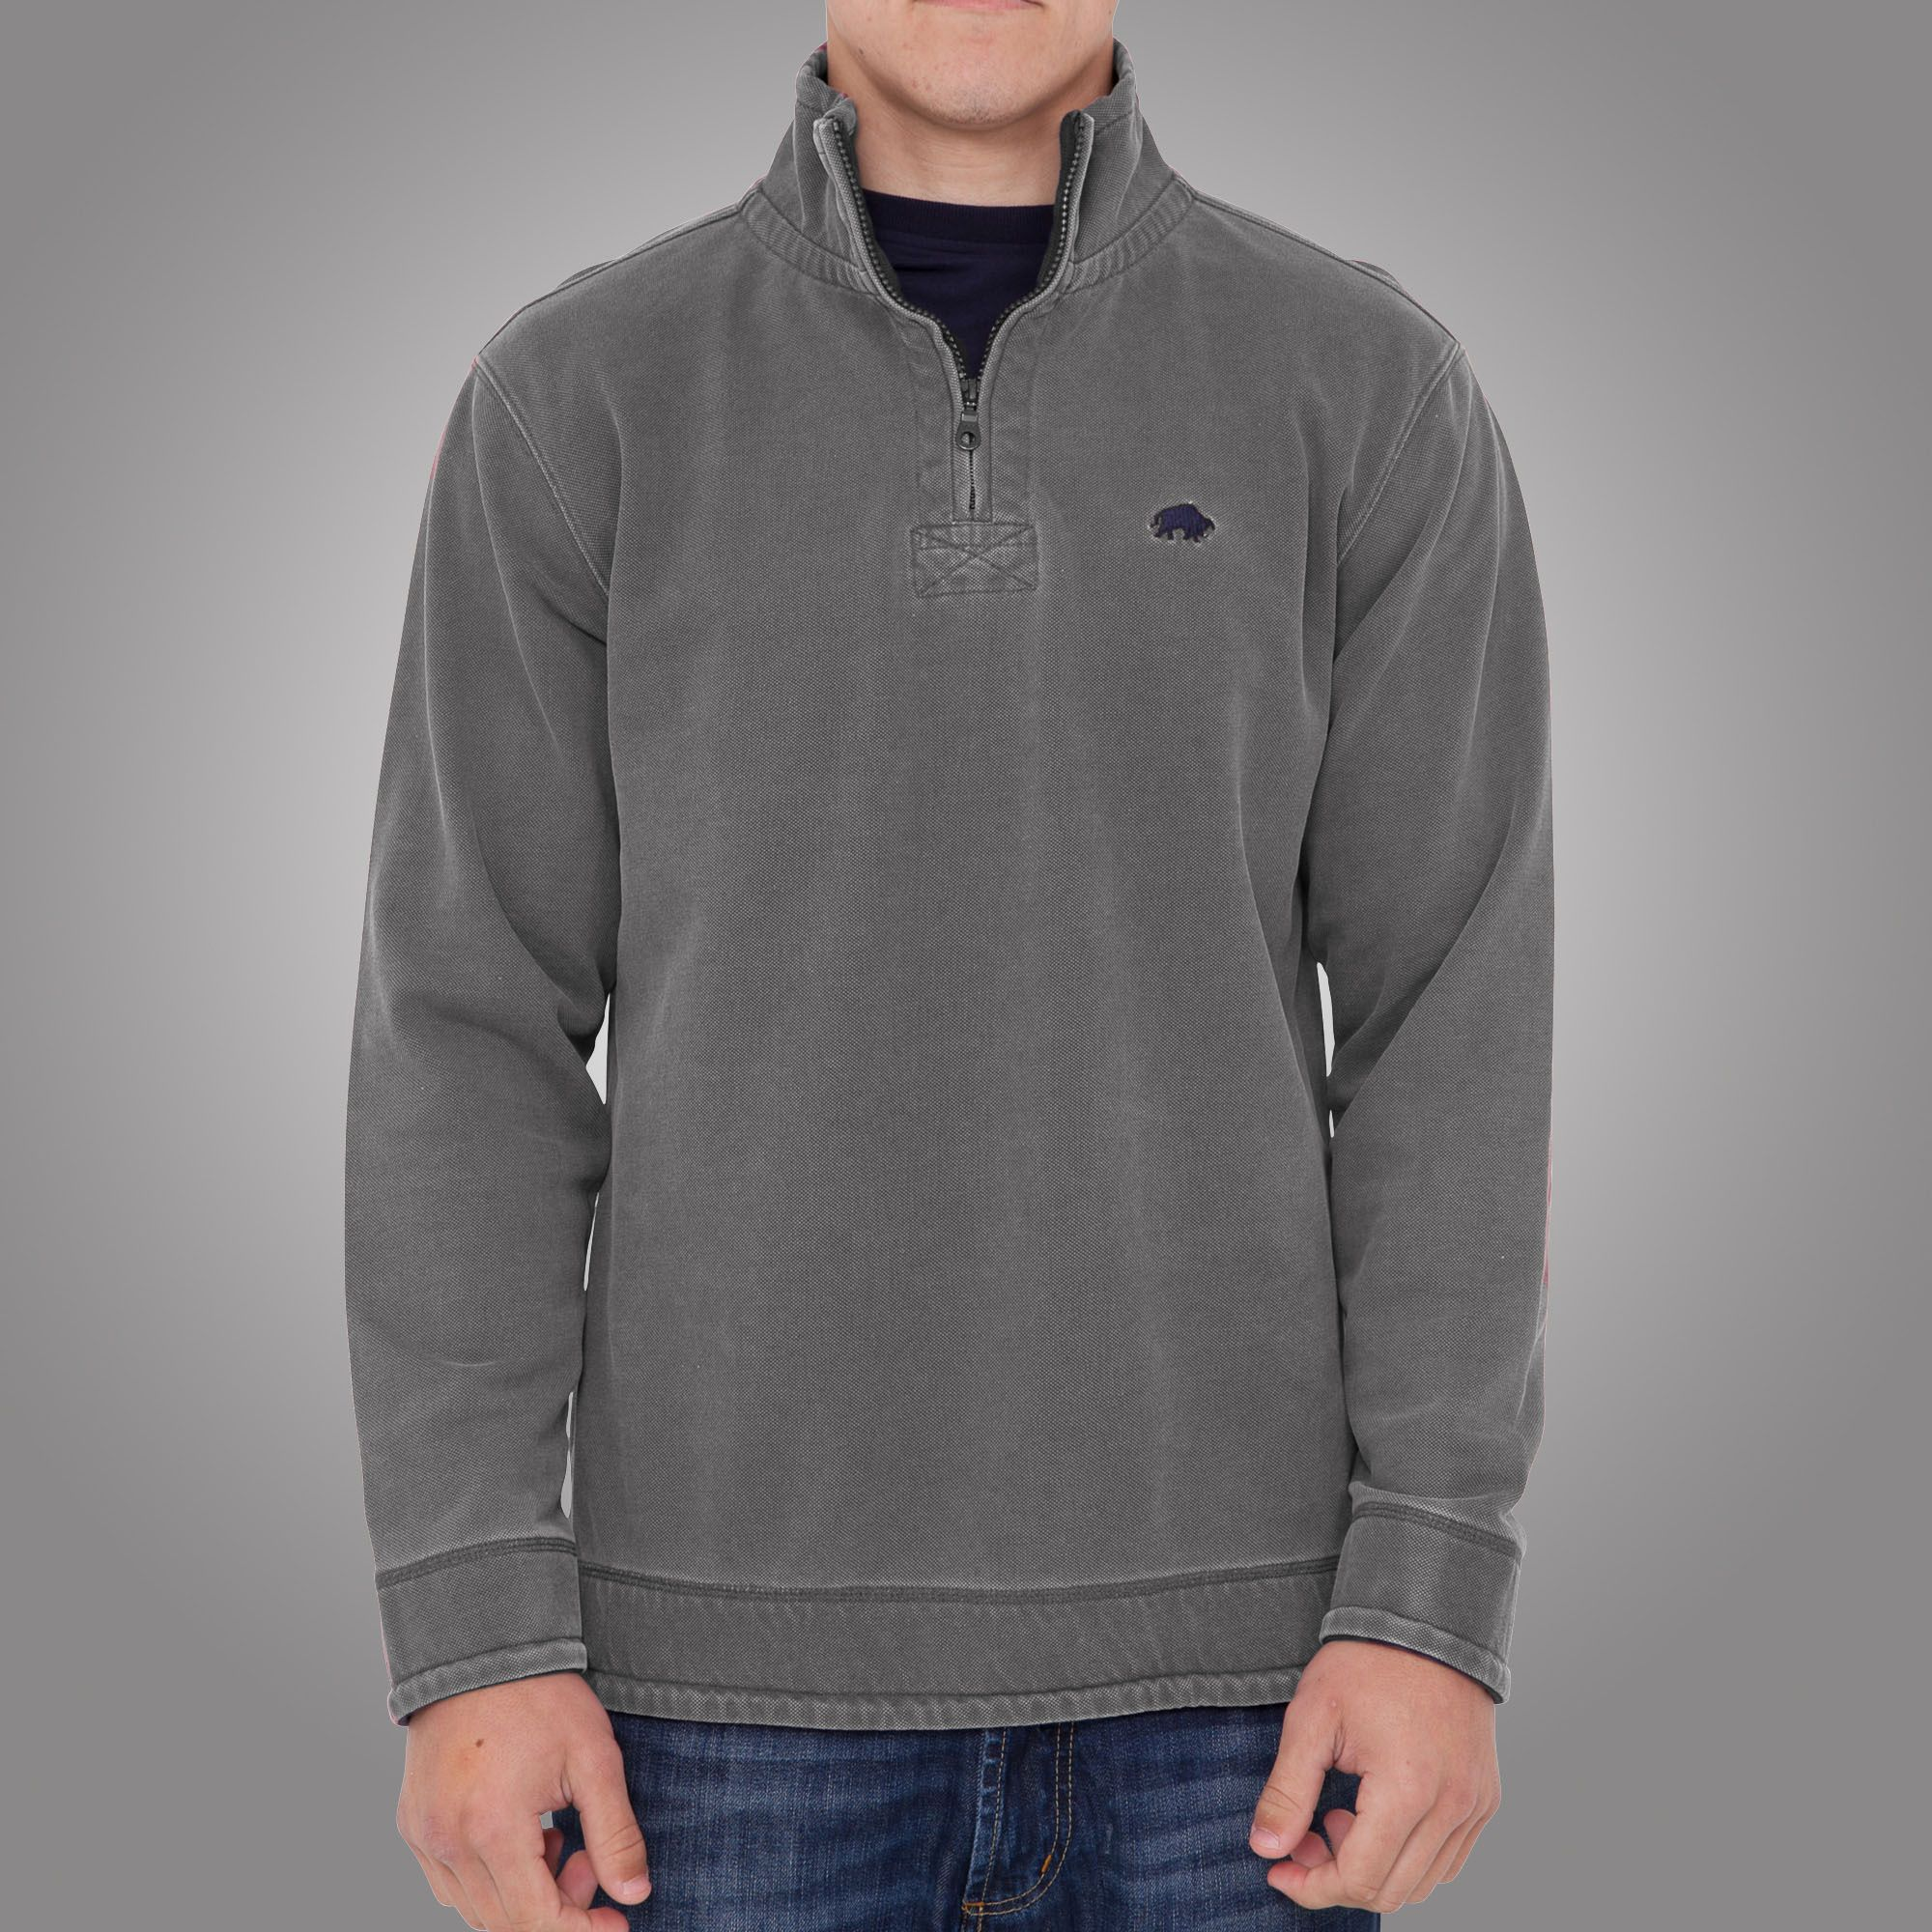 Plain 1/4 zip top grey